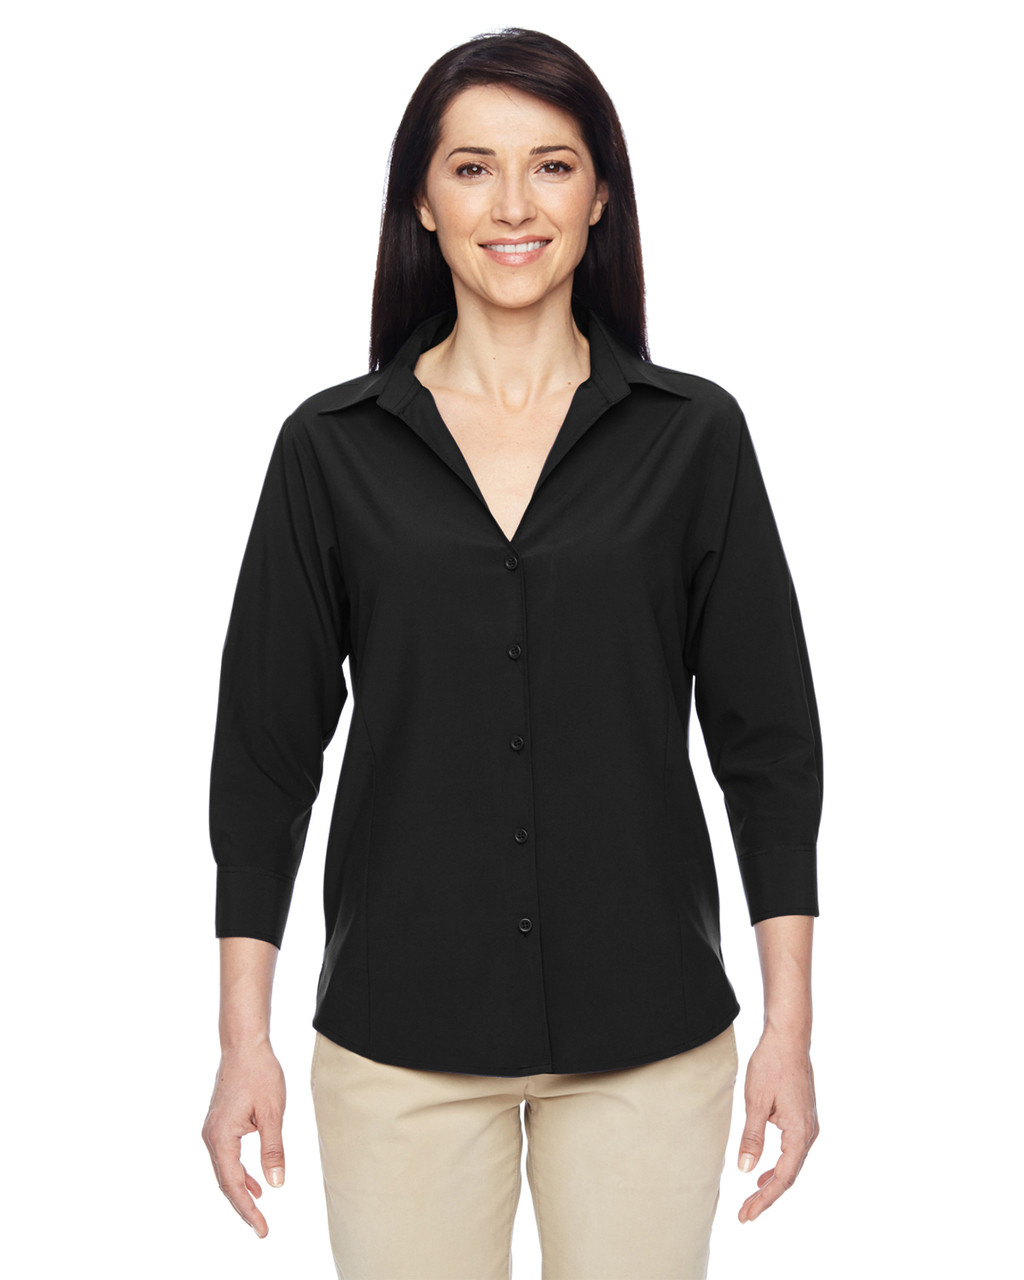 Black - M610W Harriton Ladies' Paradise Three-Quarter Sleeve Performance Shirt | BlankClothing.ca